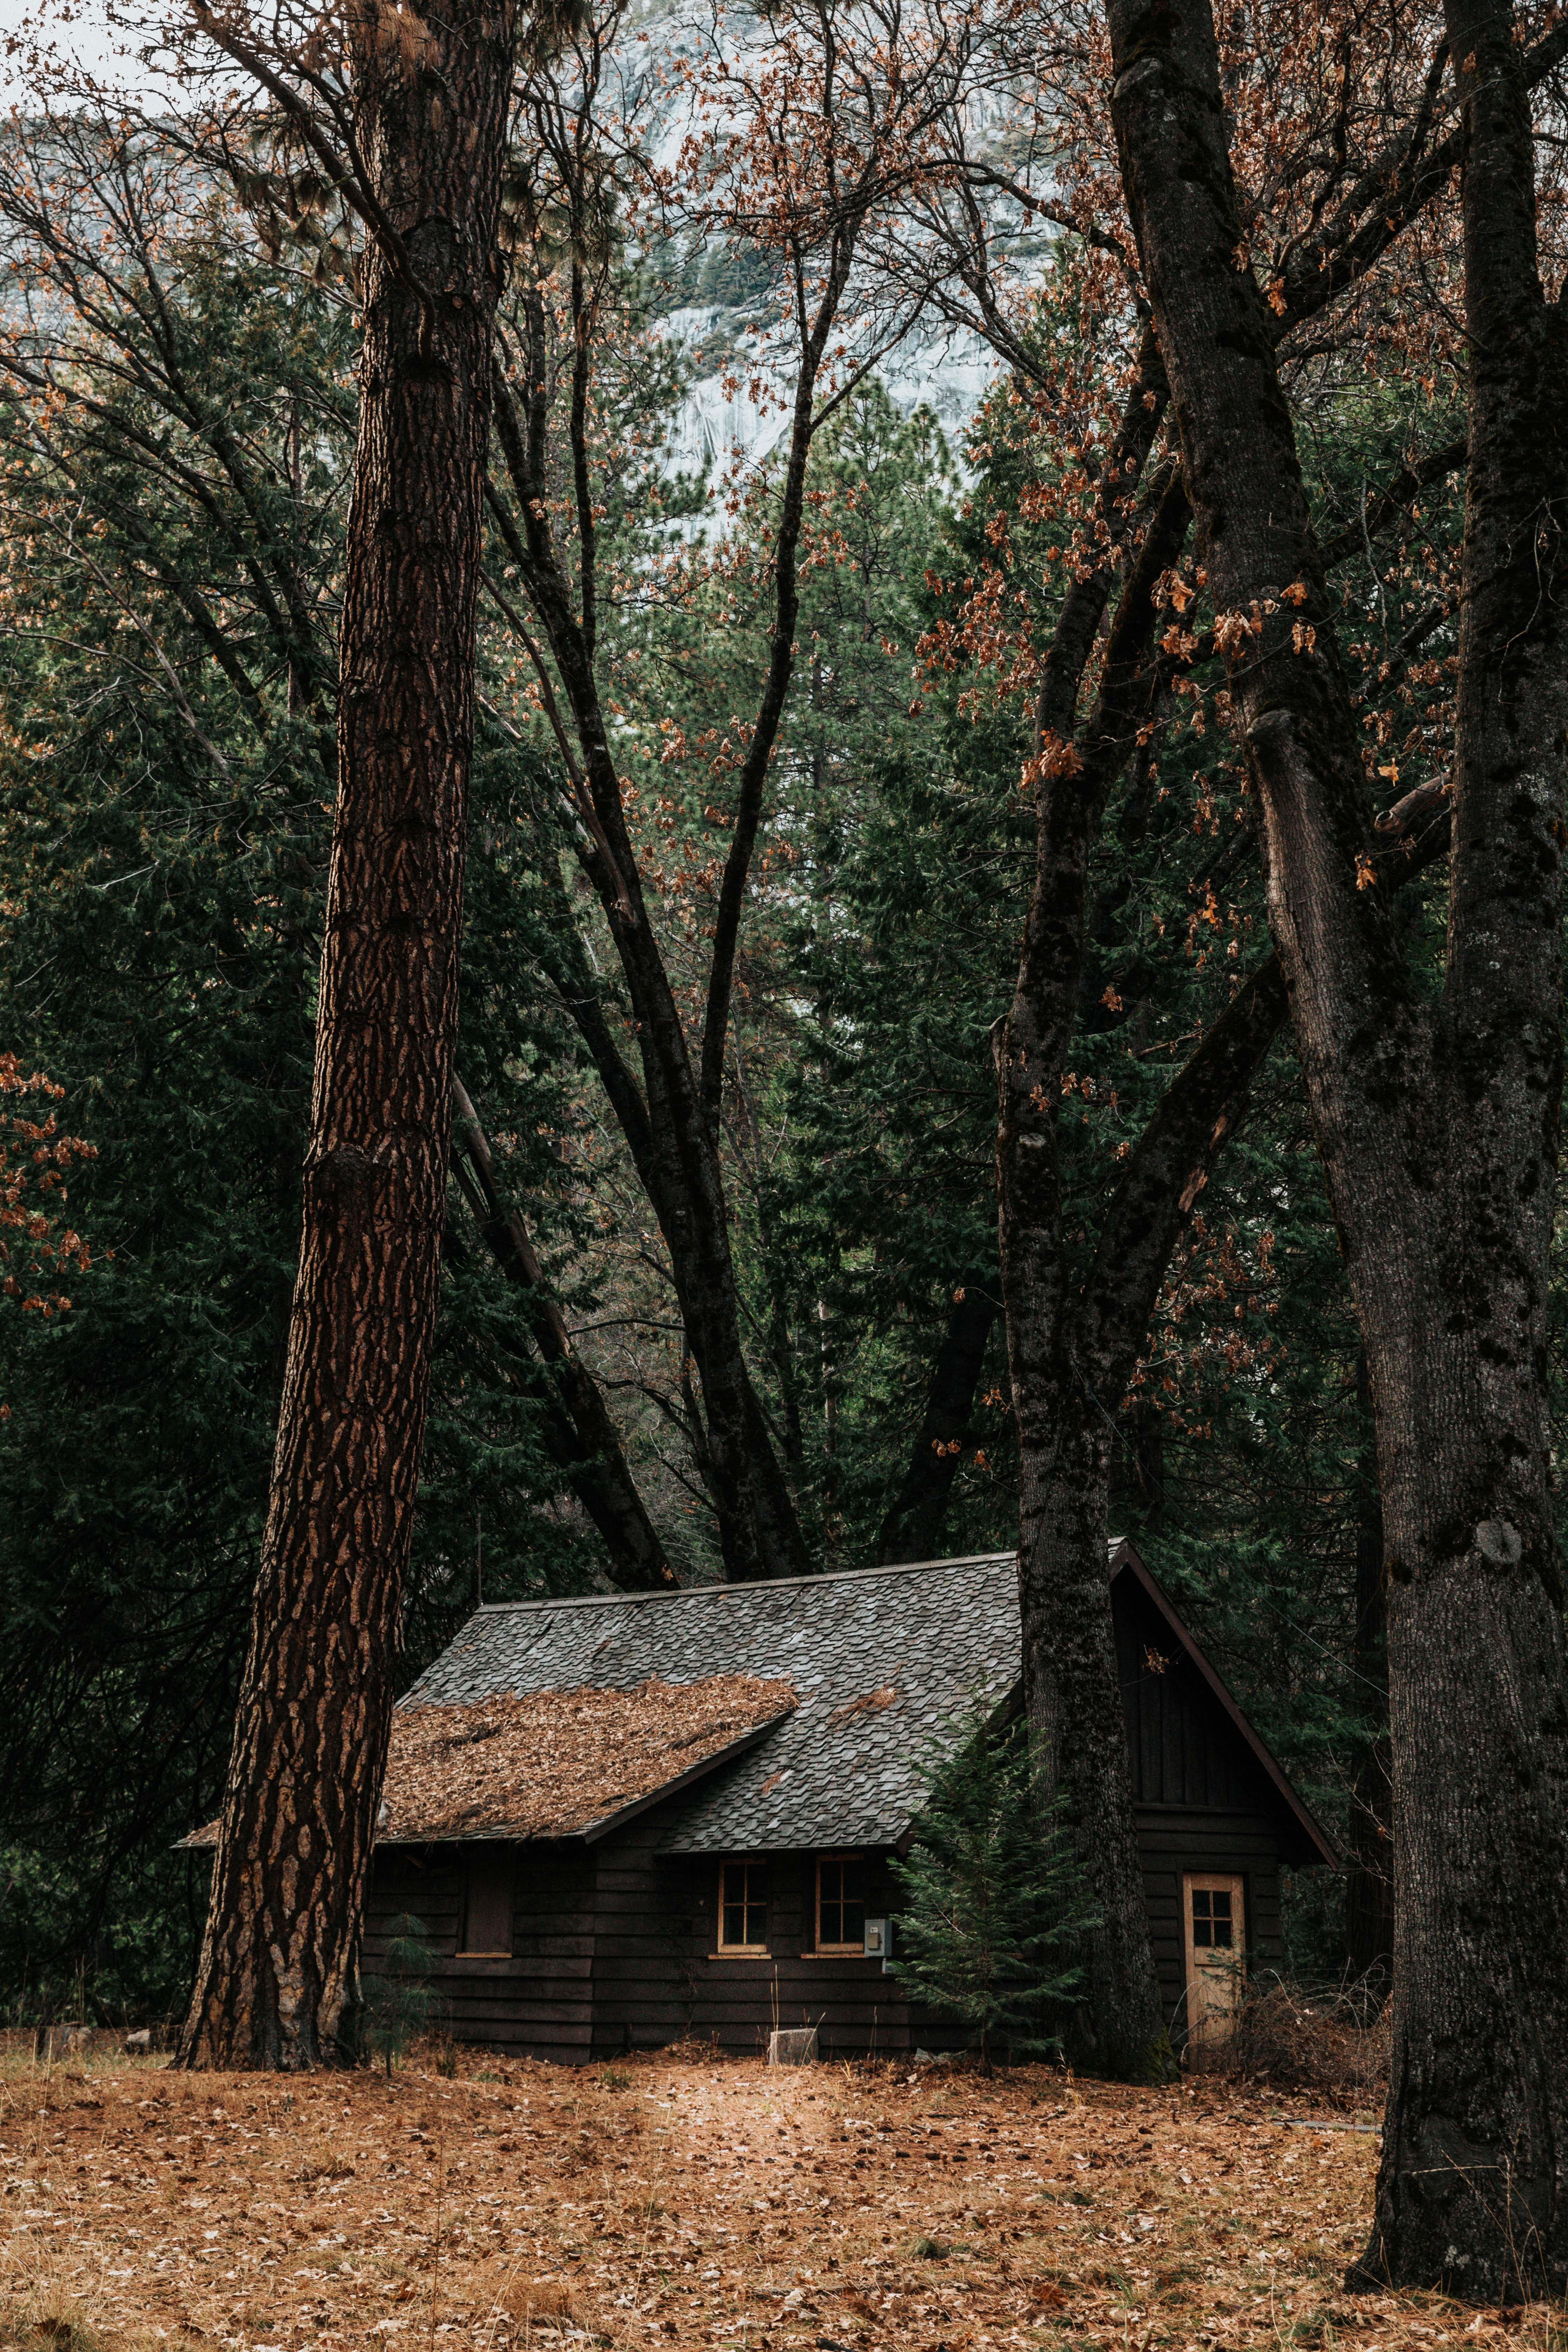 75540 download wallpaper Nature, House, Forest, Privacy, Seclusion, Autumn, Trees screensavers and pictures for free